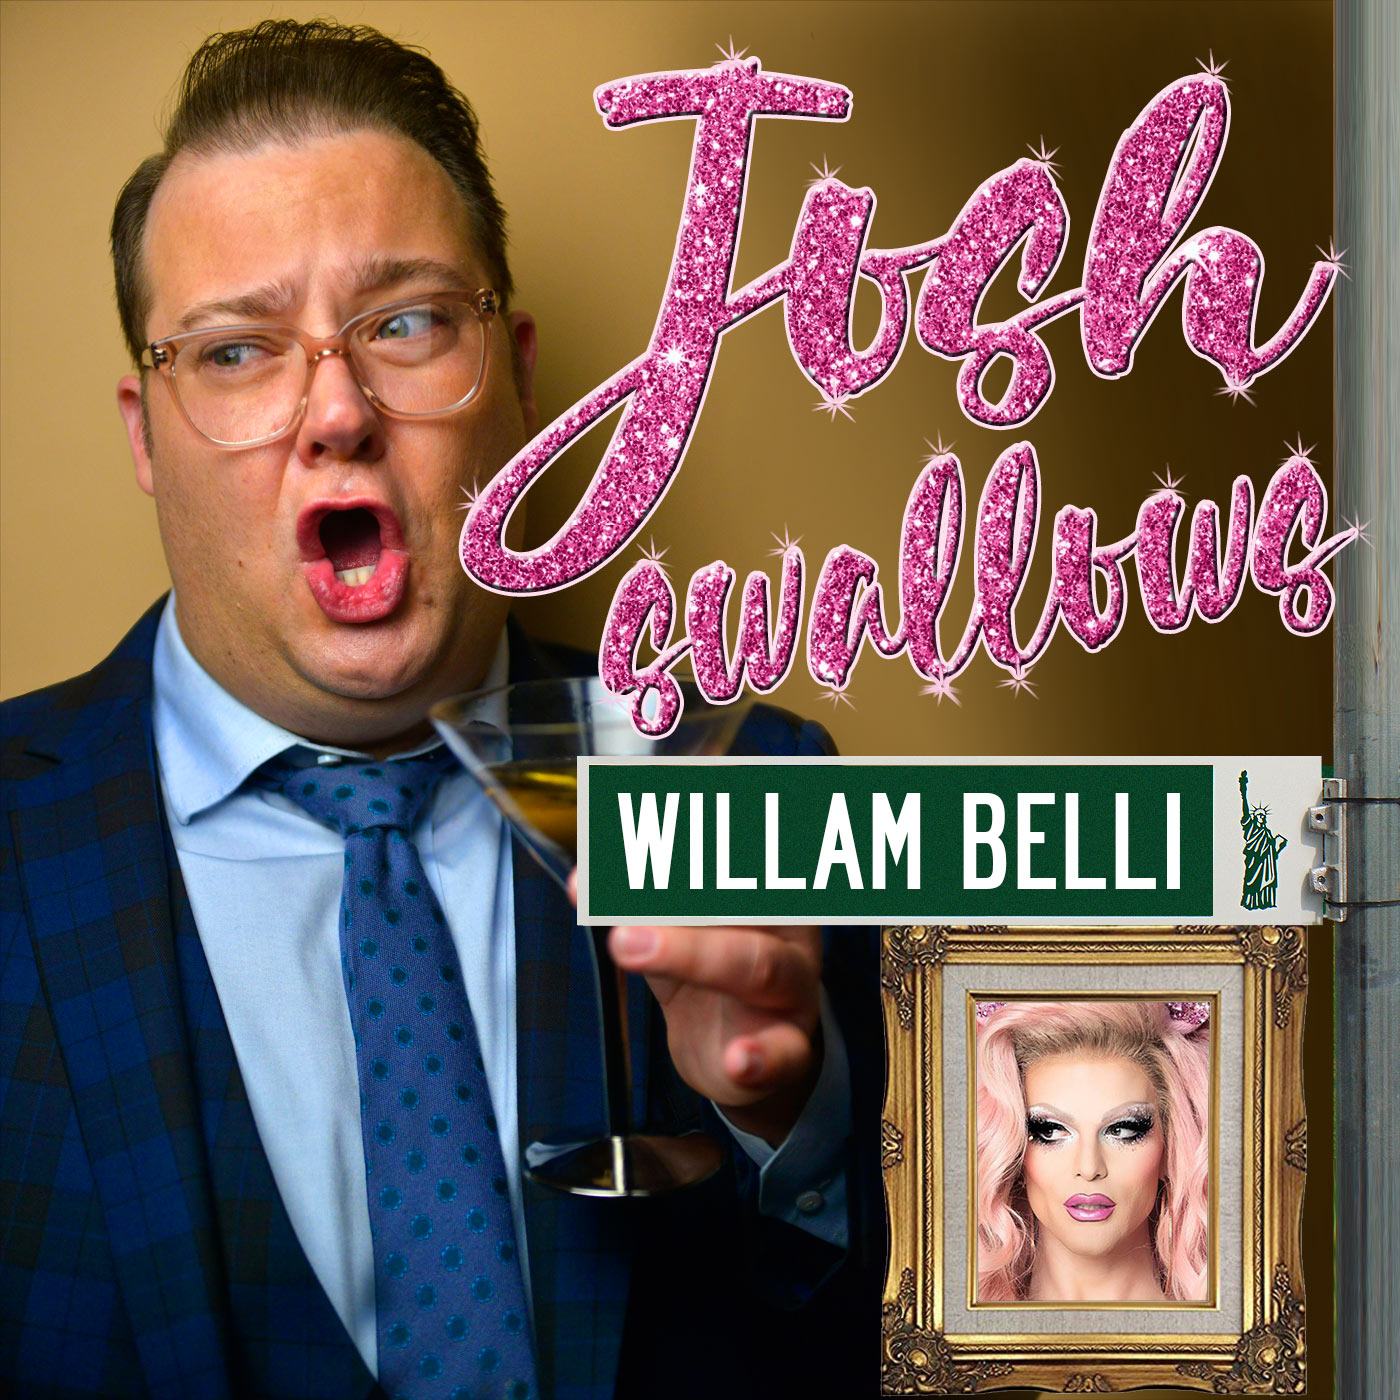 Josh Swallows Broadway Ep19 - Willam Belli, I'm gassy like a star